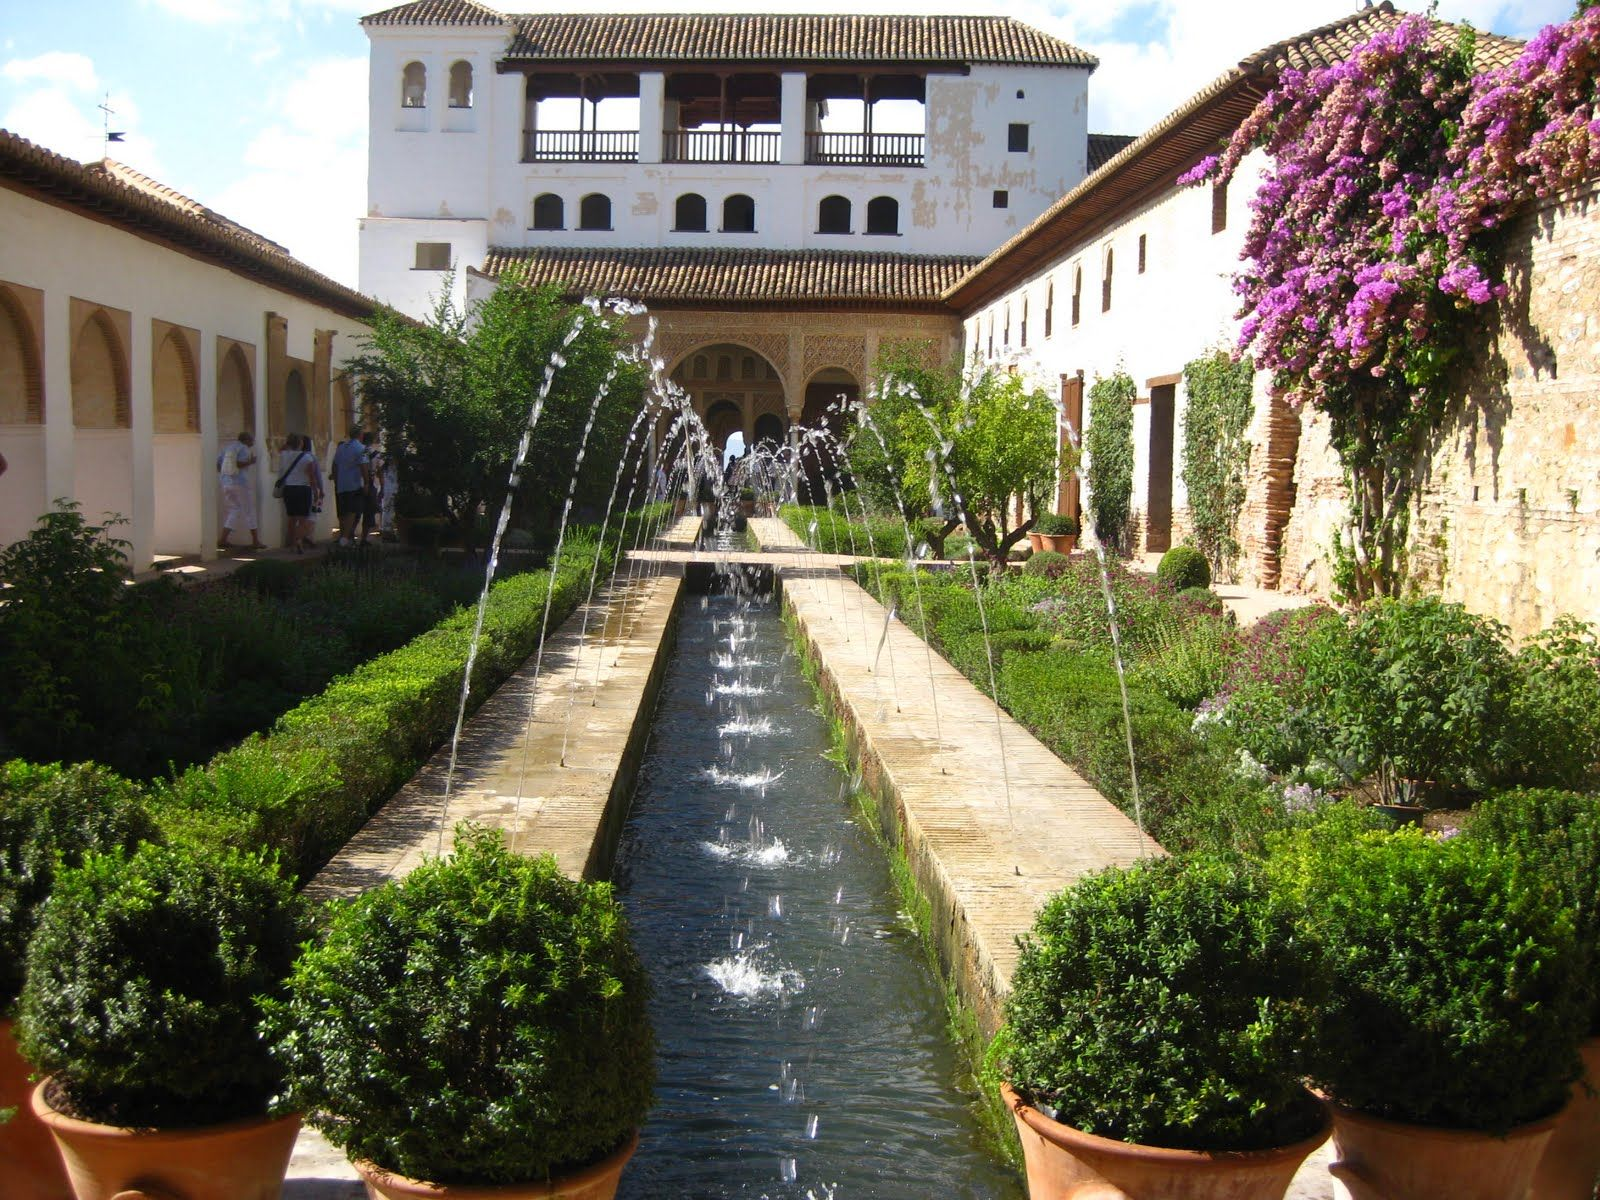 granada spain alhambra interior garden at sunny day